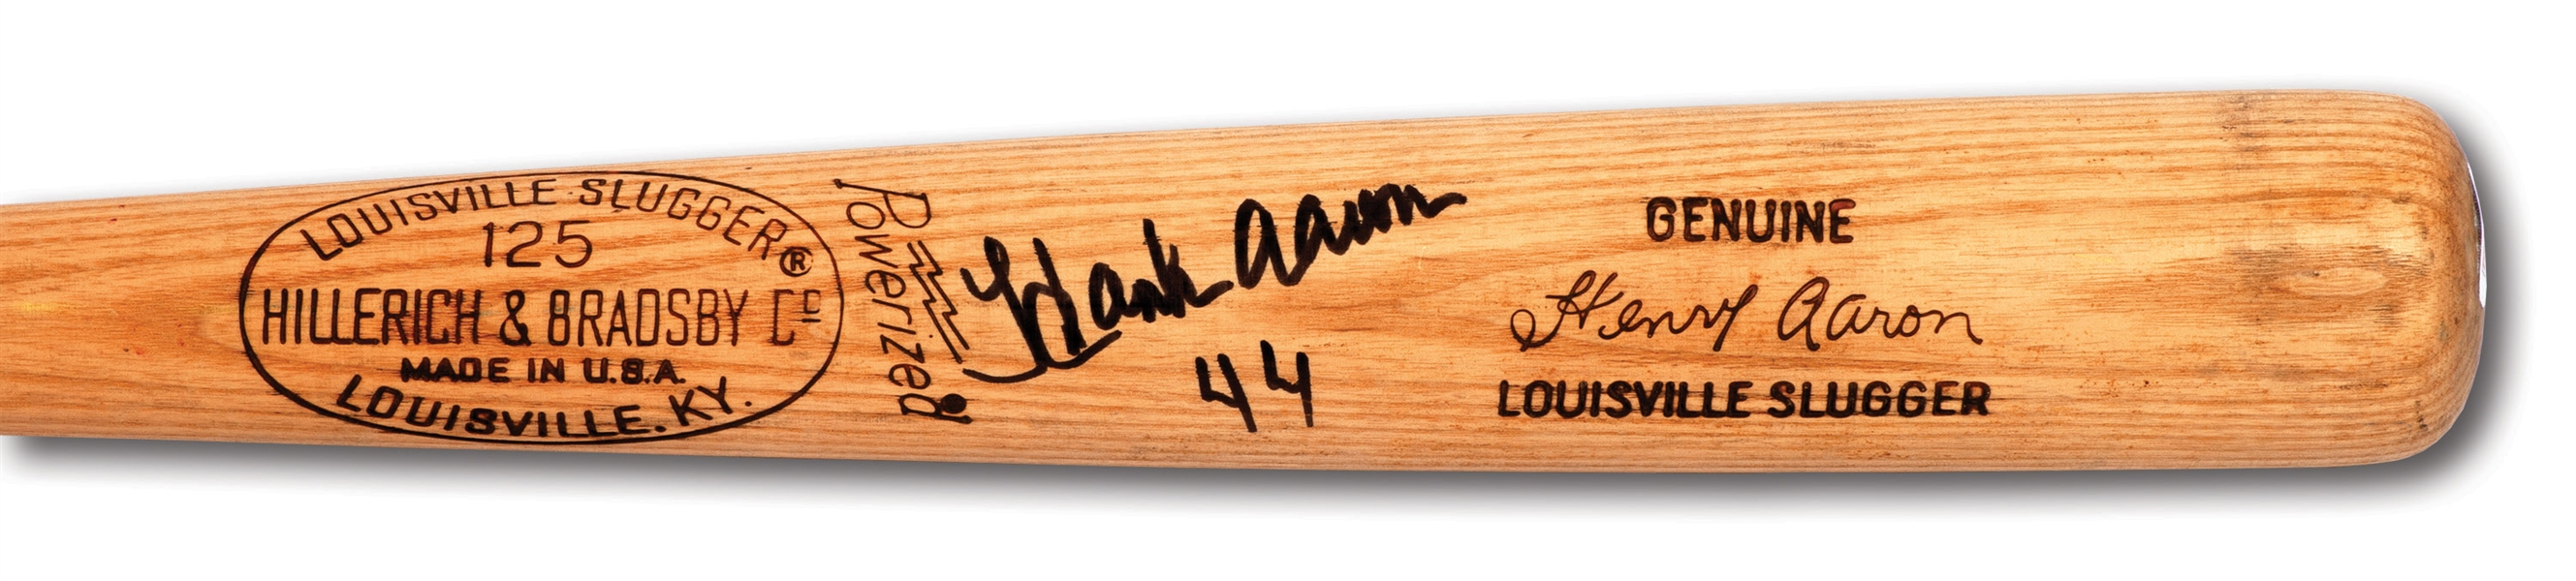 1974-75 HANK AARON AUTOGRAPHED H&B PROFESSIONAL MODEL A99 GAME USED BAT FROM ERA HE HIT #715 TO PASS RUTH (PSA/DNA GU 7)